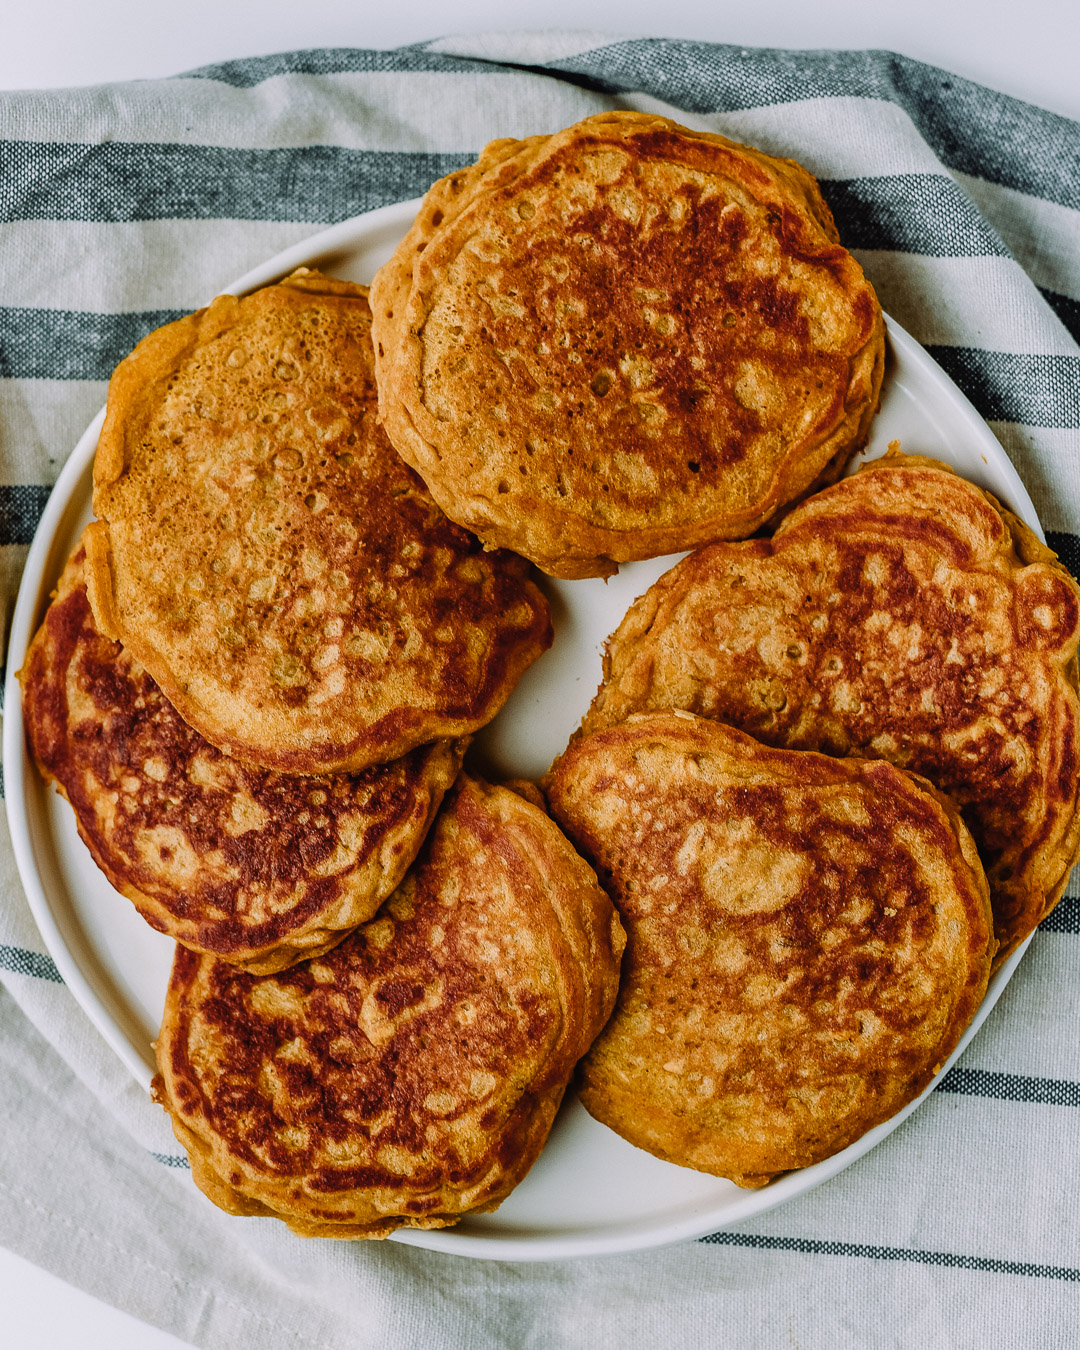 Stack of oatmeal pancakes on a white plate sitting on top of a kitchen towel on a white table.